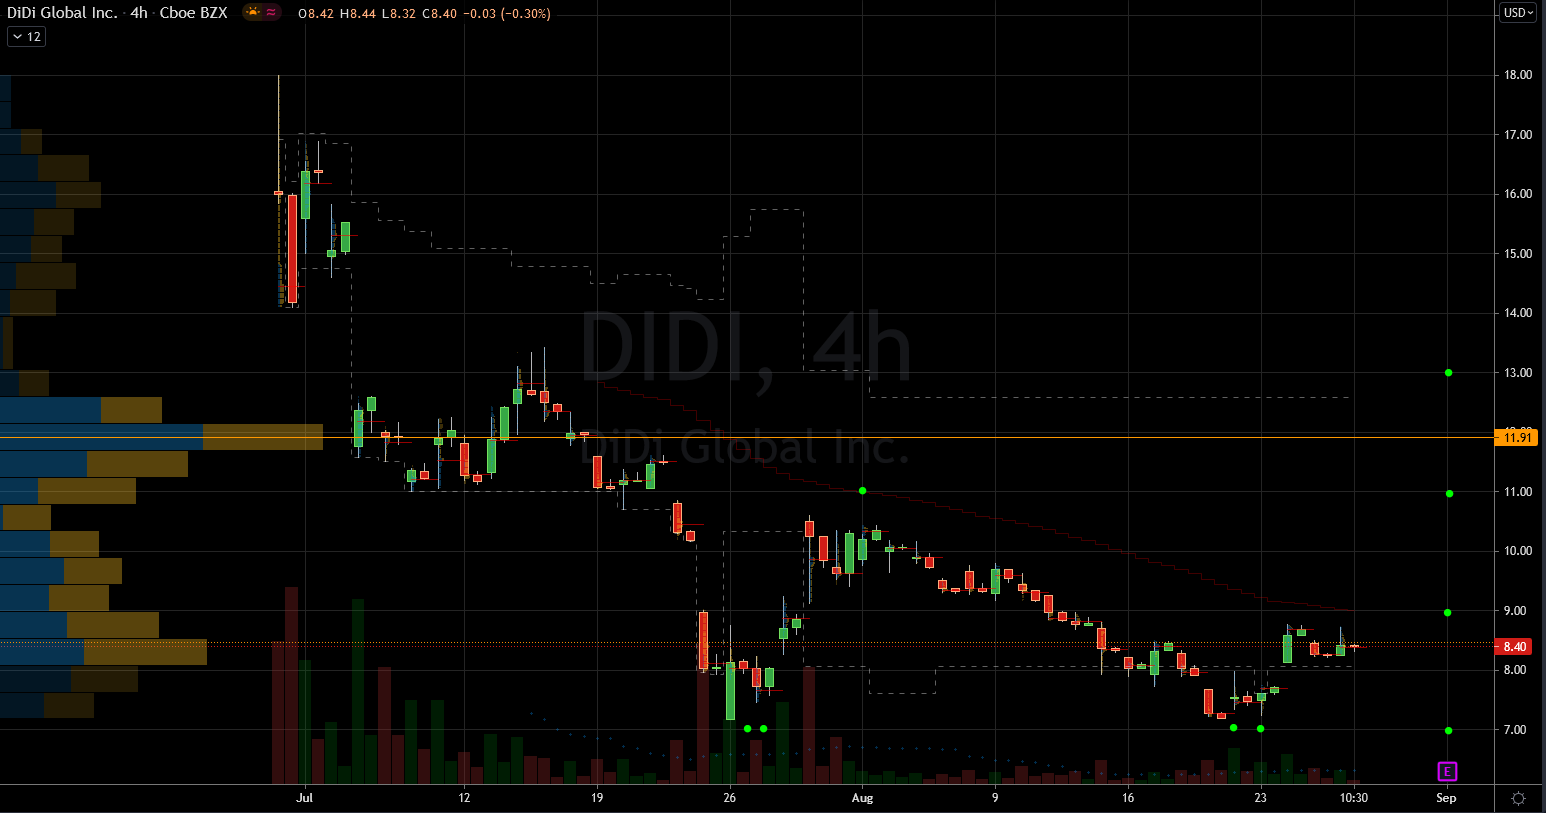 DIDI Stock Chart Showing Potential Base